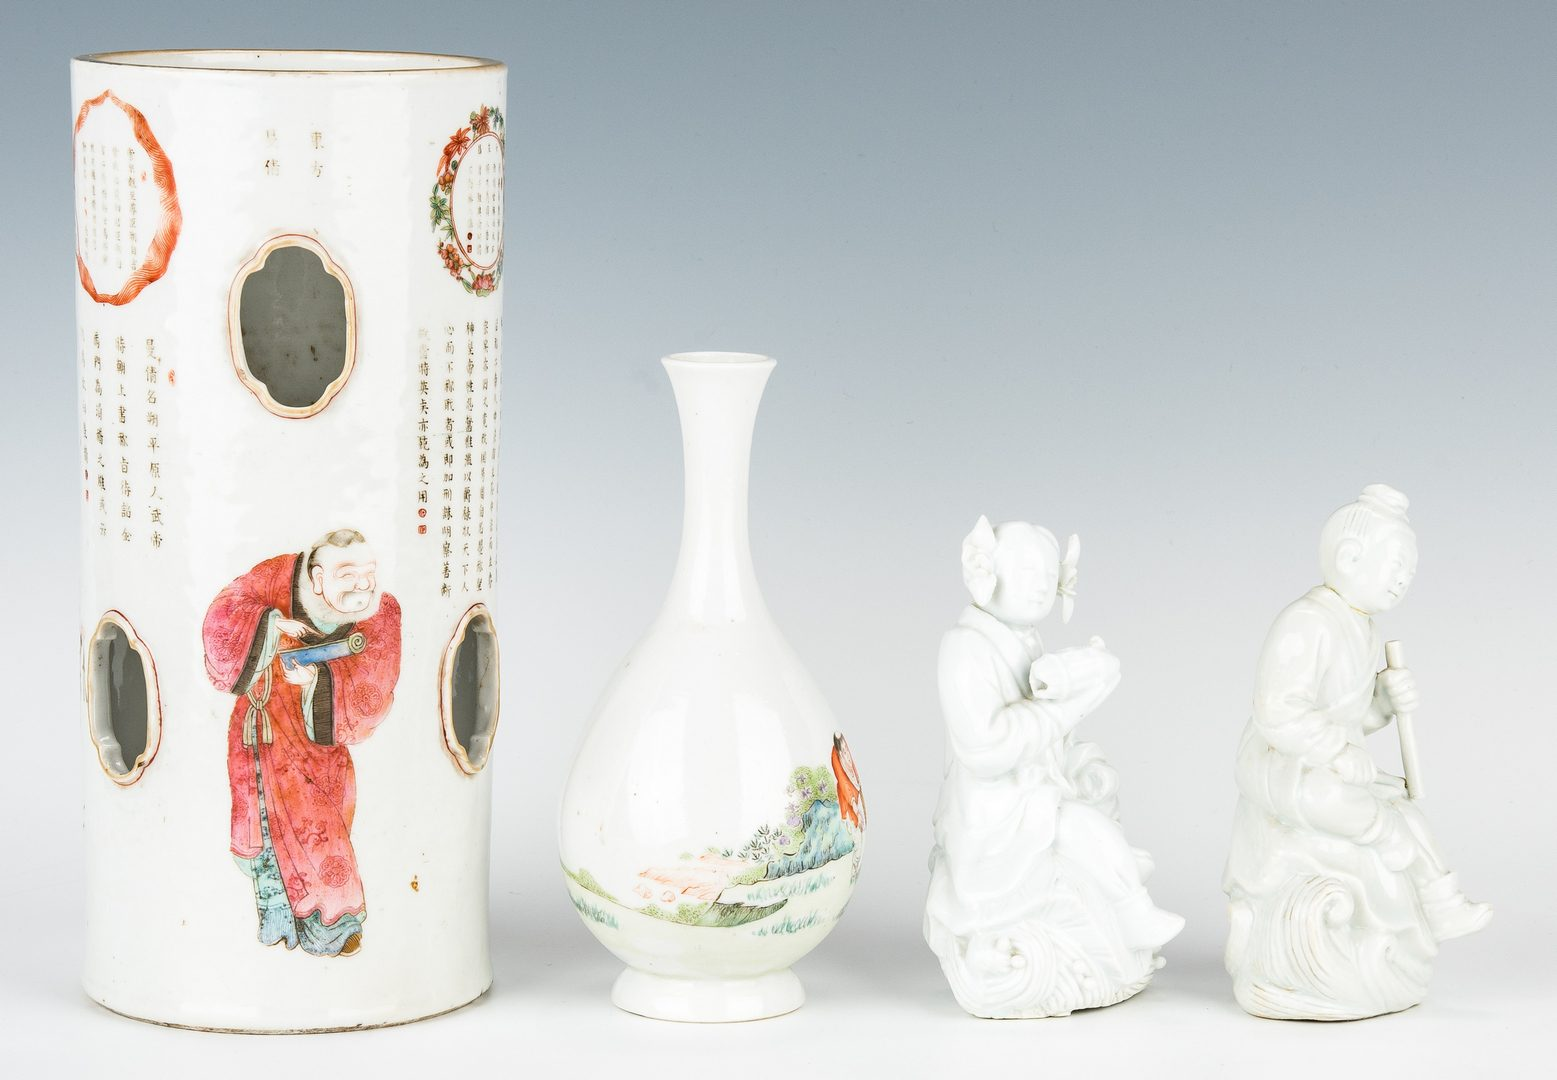 Lot 22: Chinese Hat Stand, Vase and Blanc de Chine Figures, 4 items